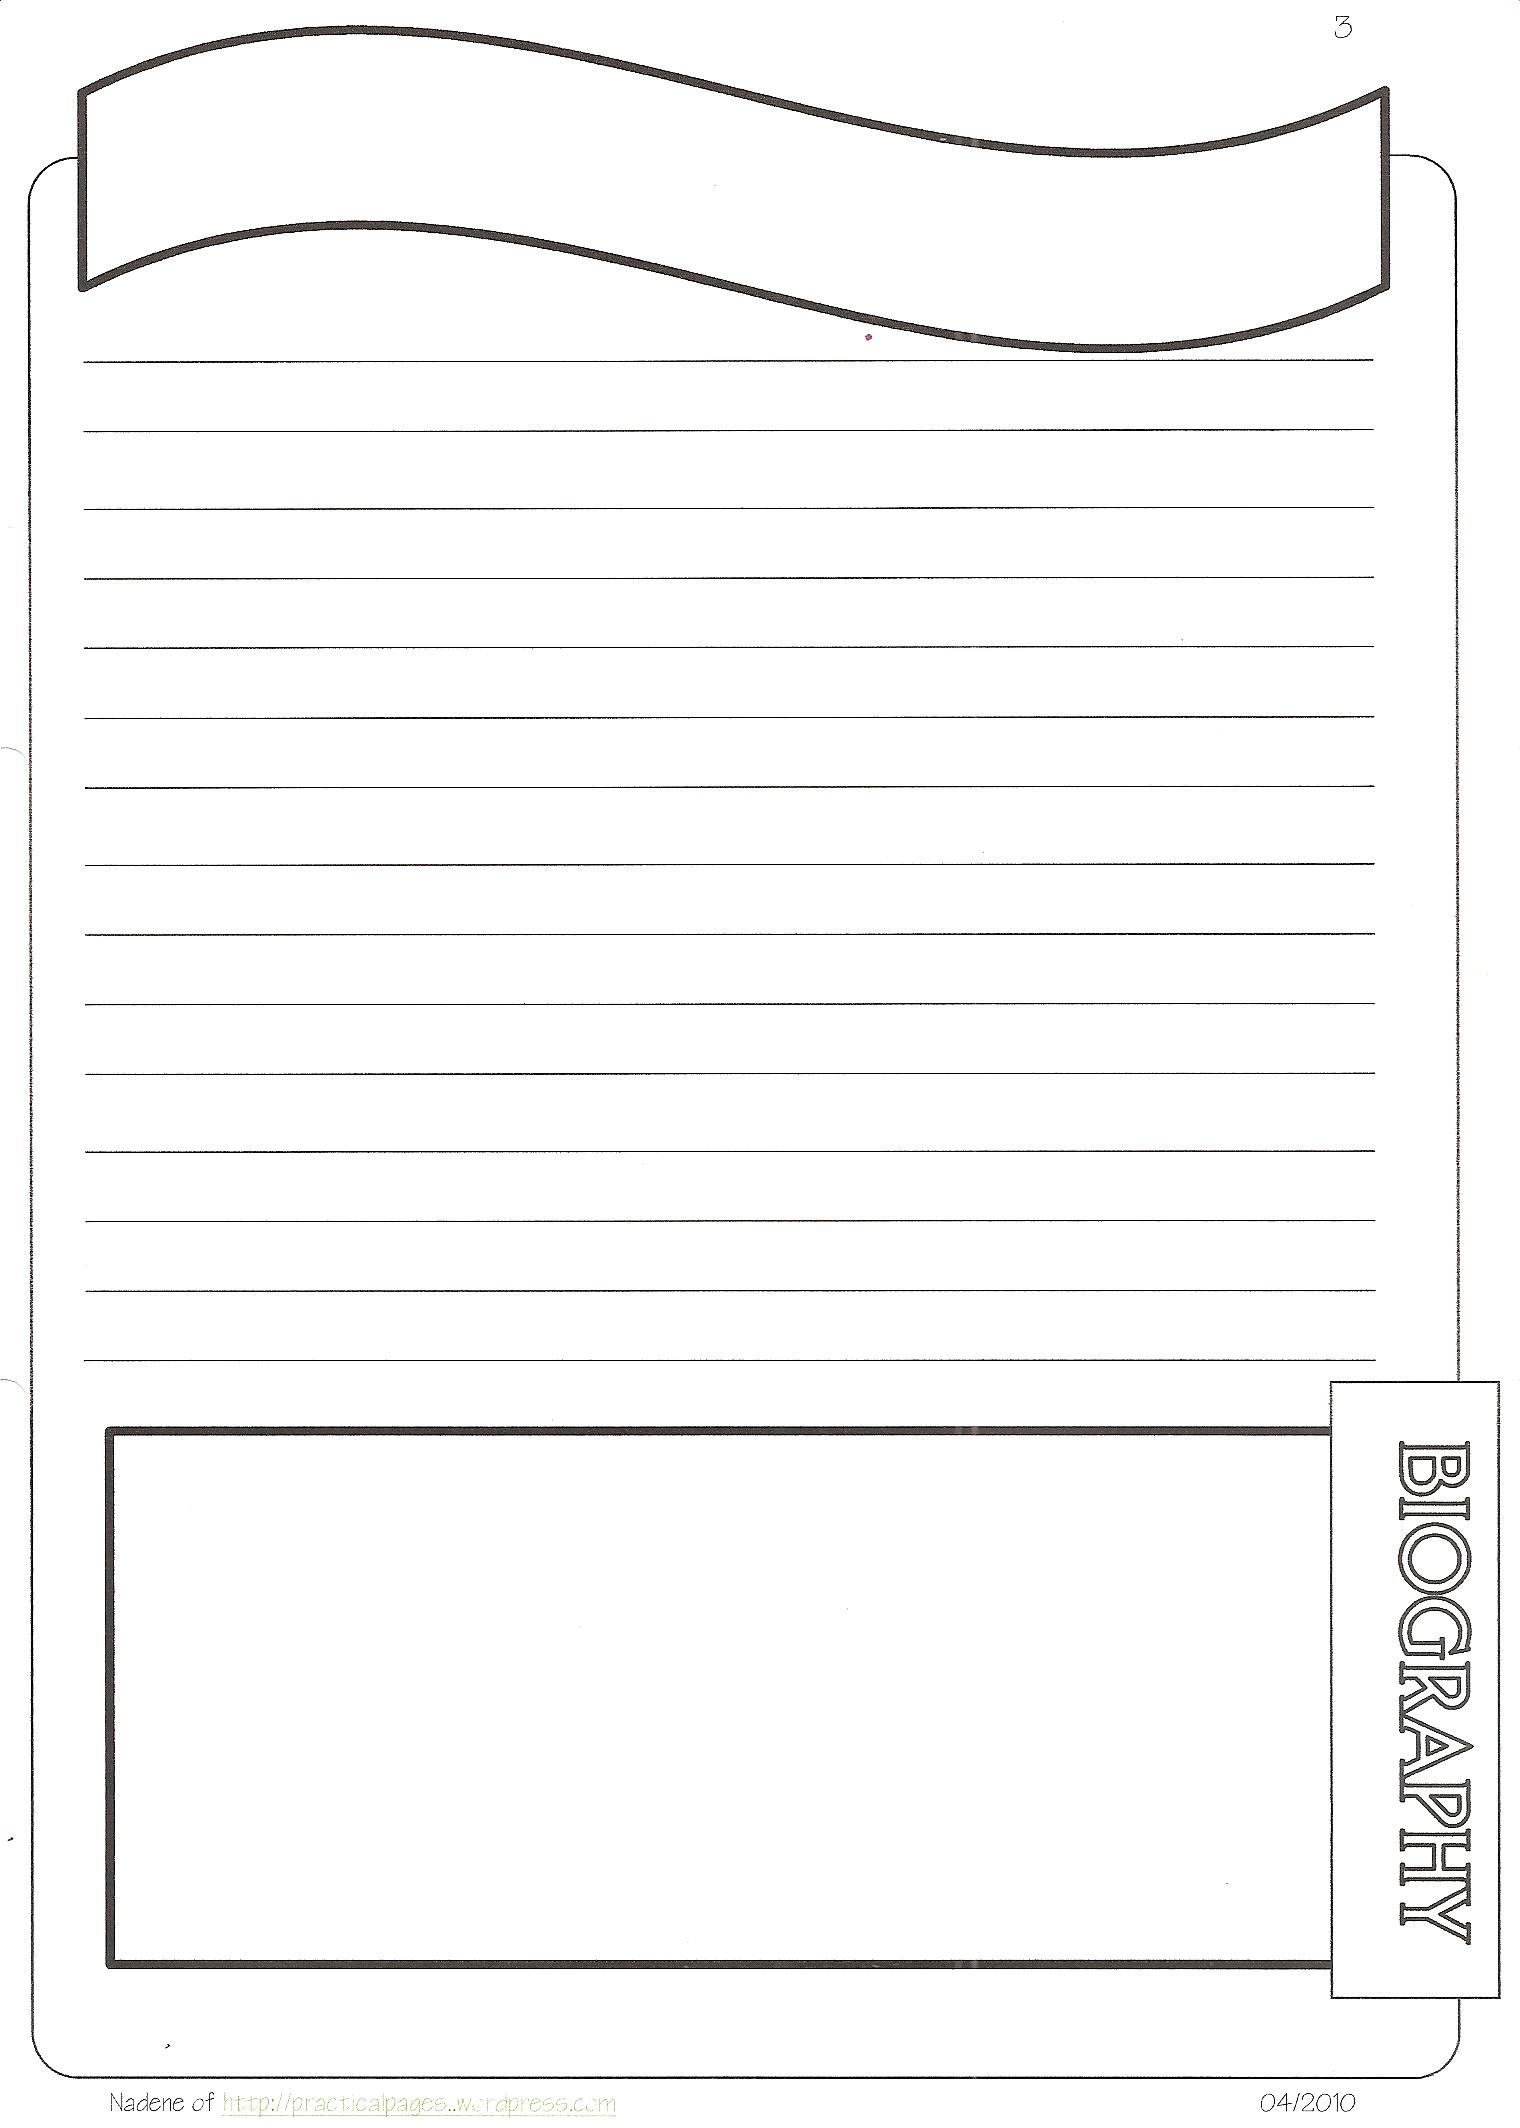 New Biography Notebook Page Templates ogWNmN3i